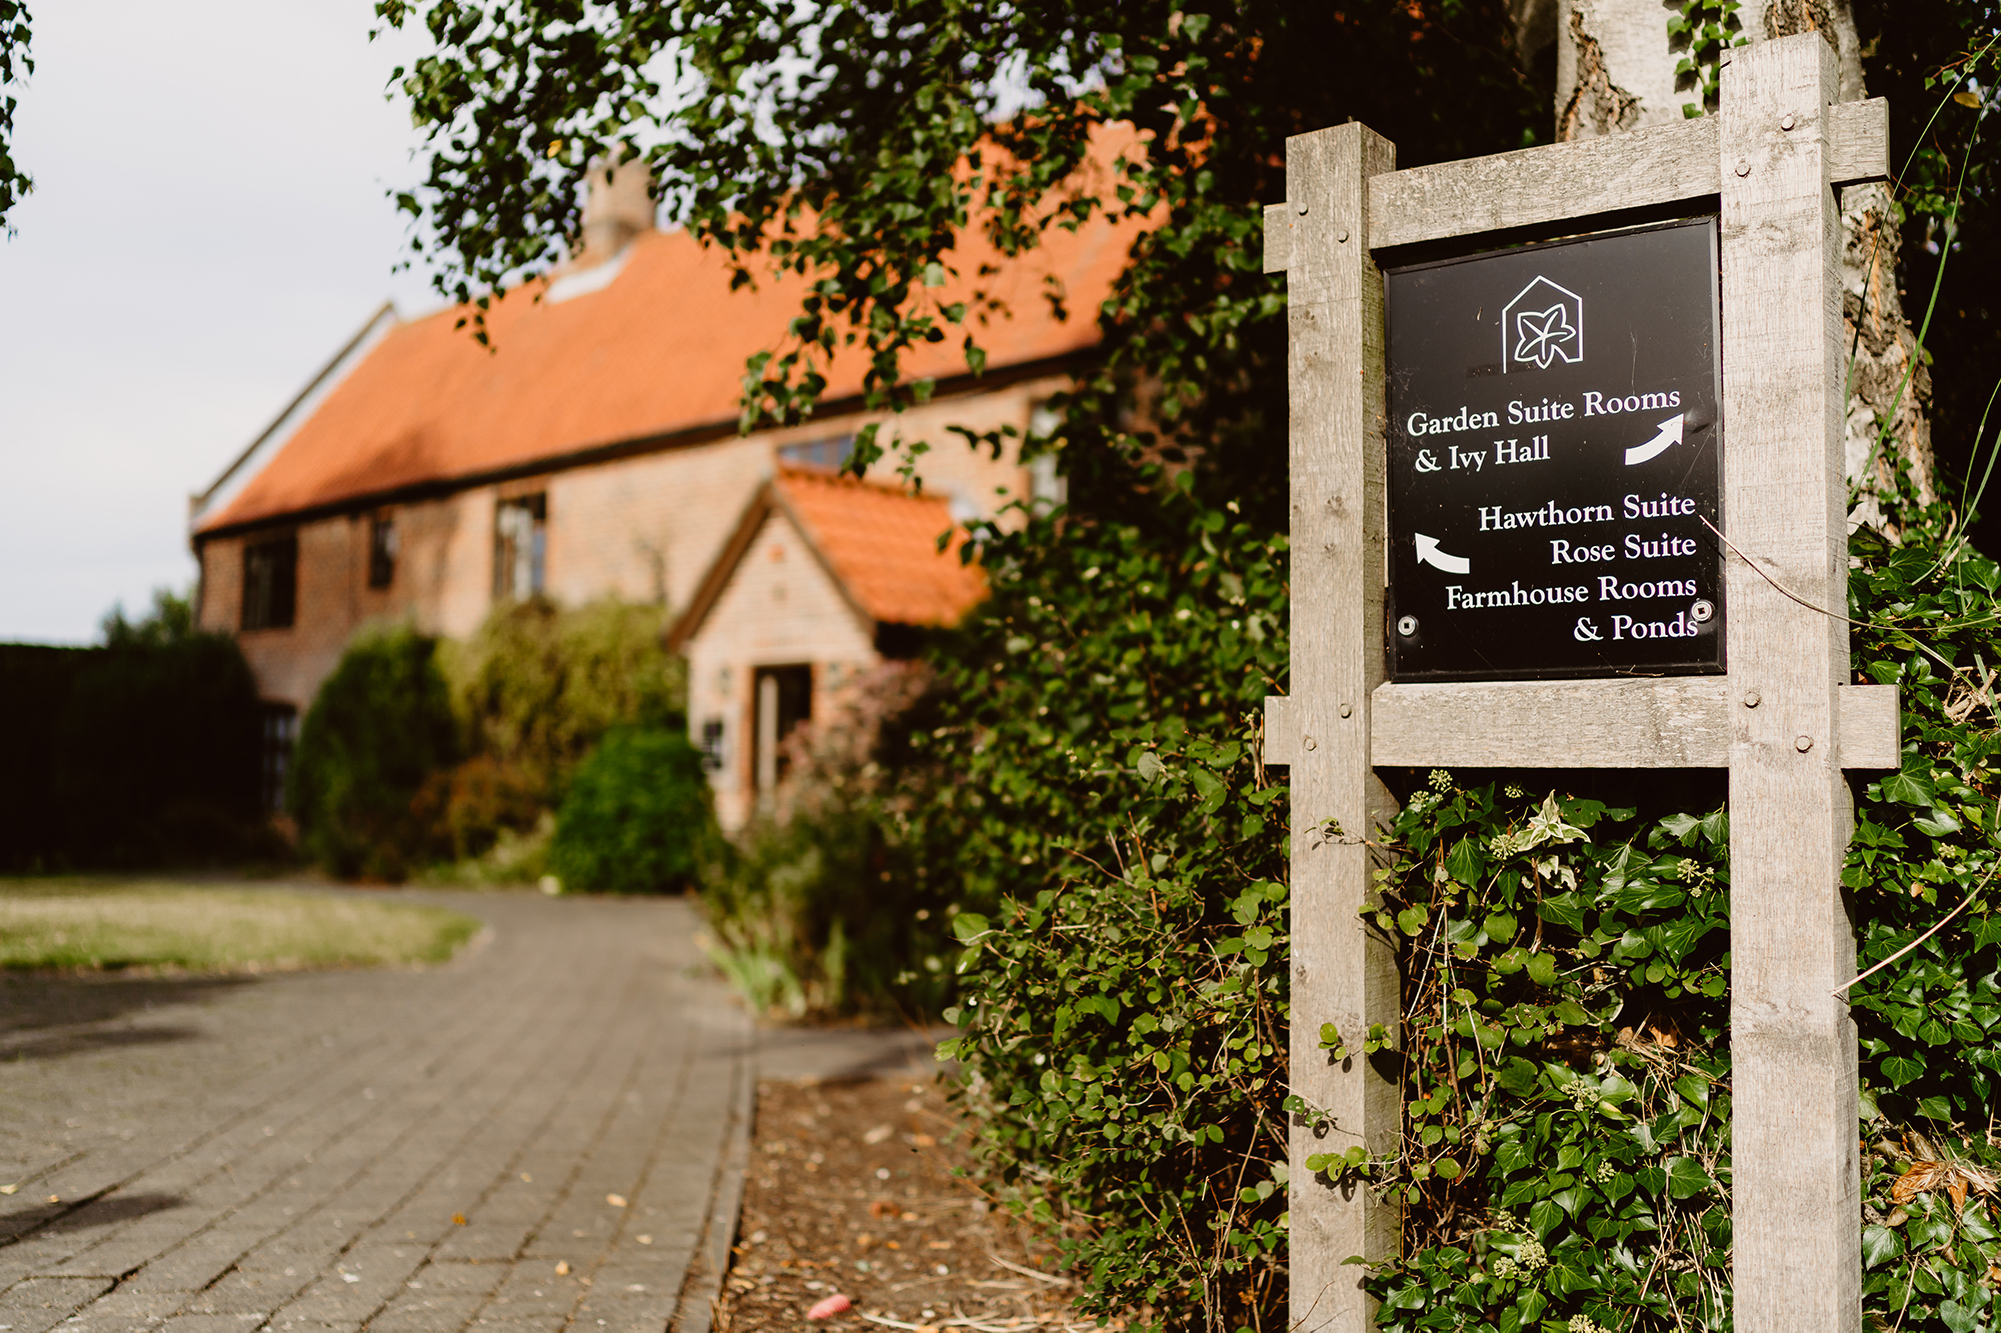 Ivy House Country Hotel Sign With Venue Navigation Instructions